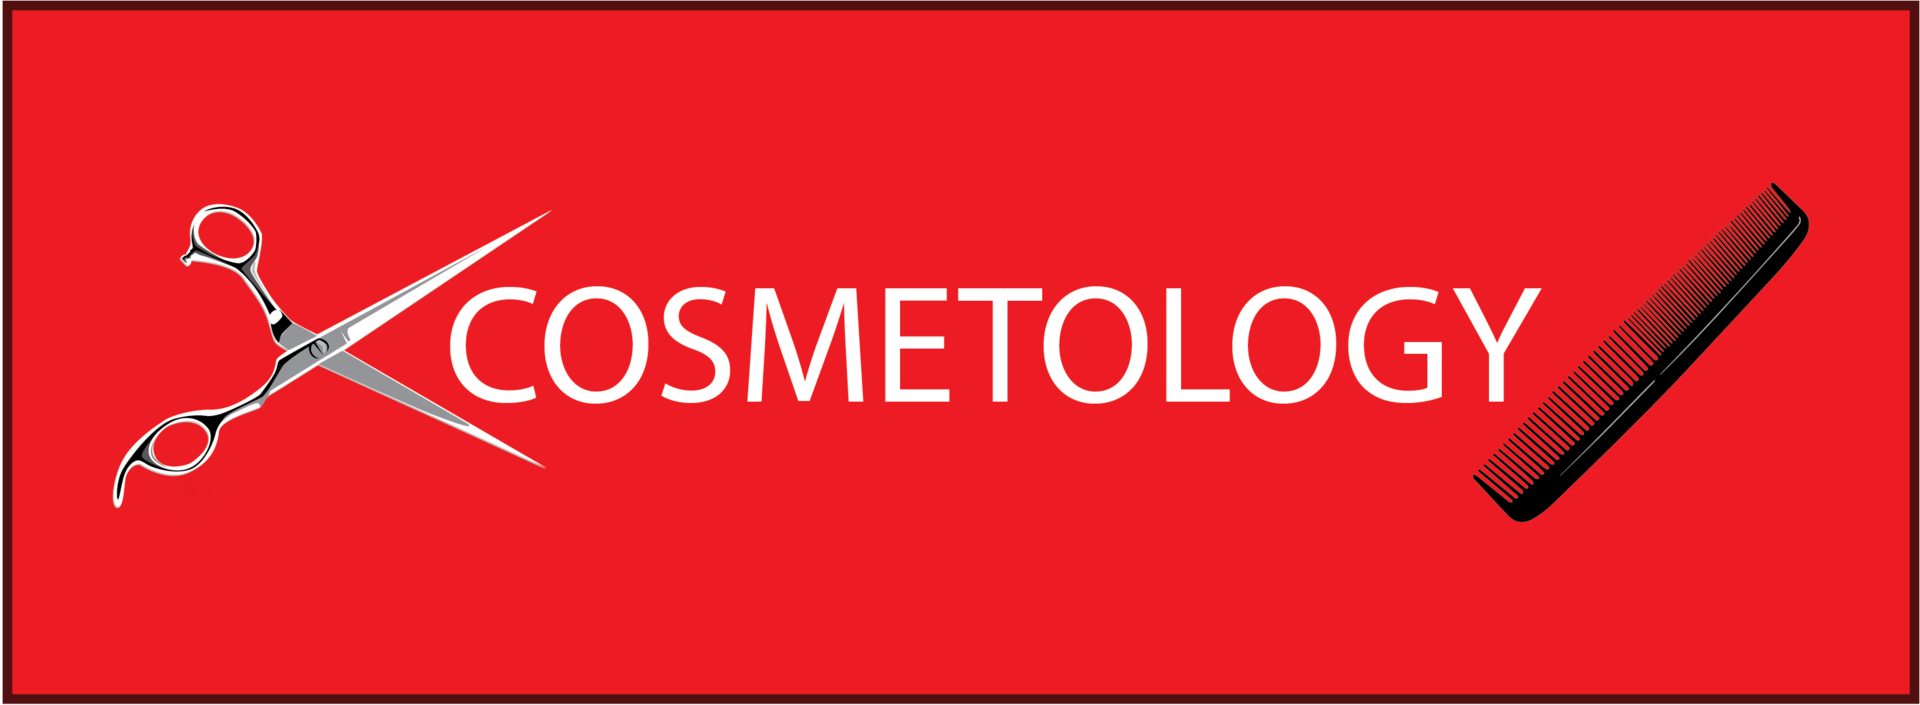 Cosmetology services